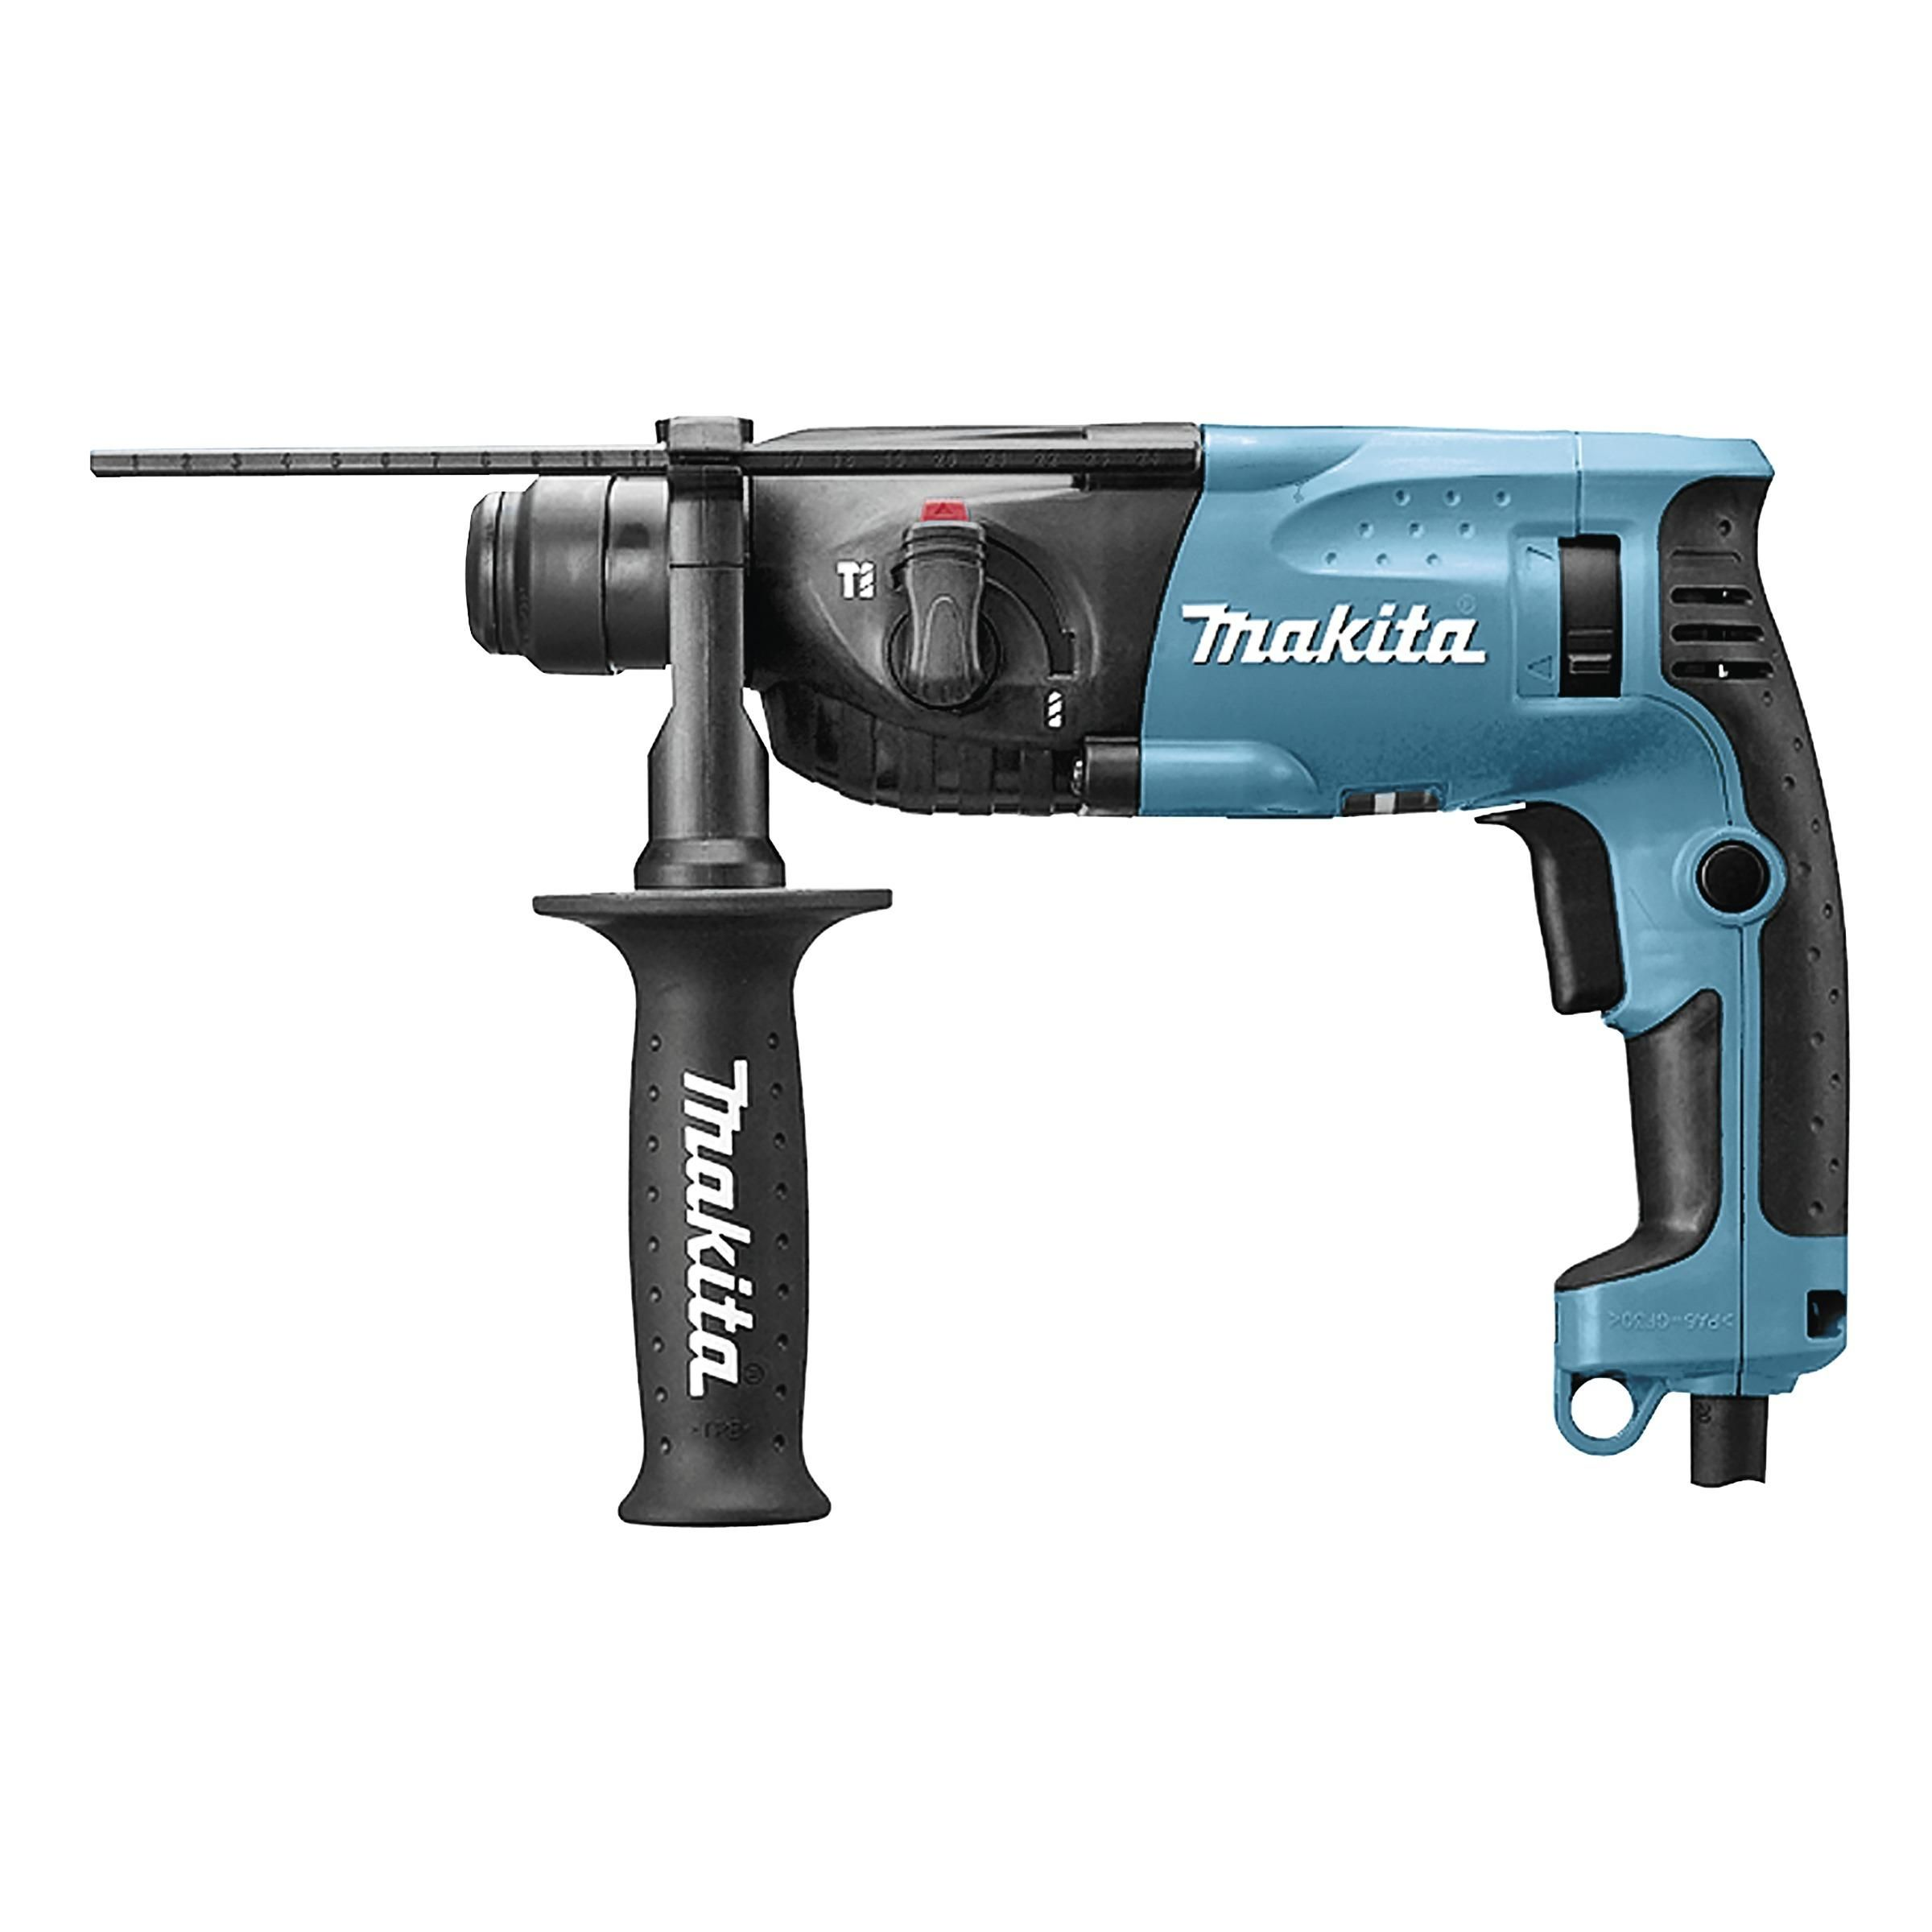 Makita Vlakschuurmachine Bo4565k Makita Vlakschuurmachine Bo4565k In 2019 Products Schuren Van